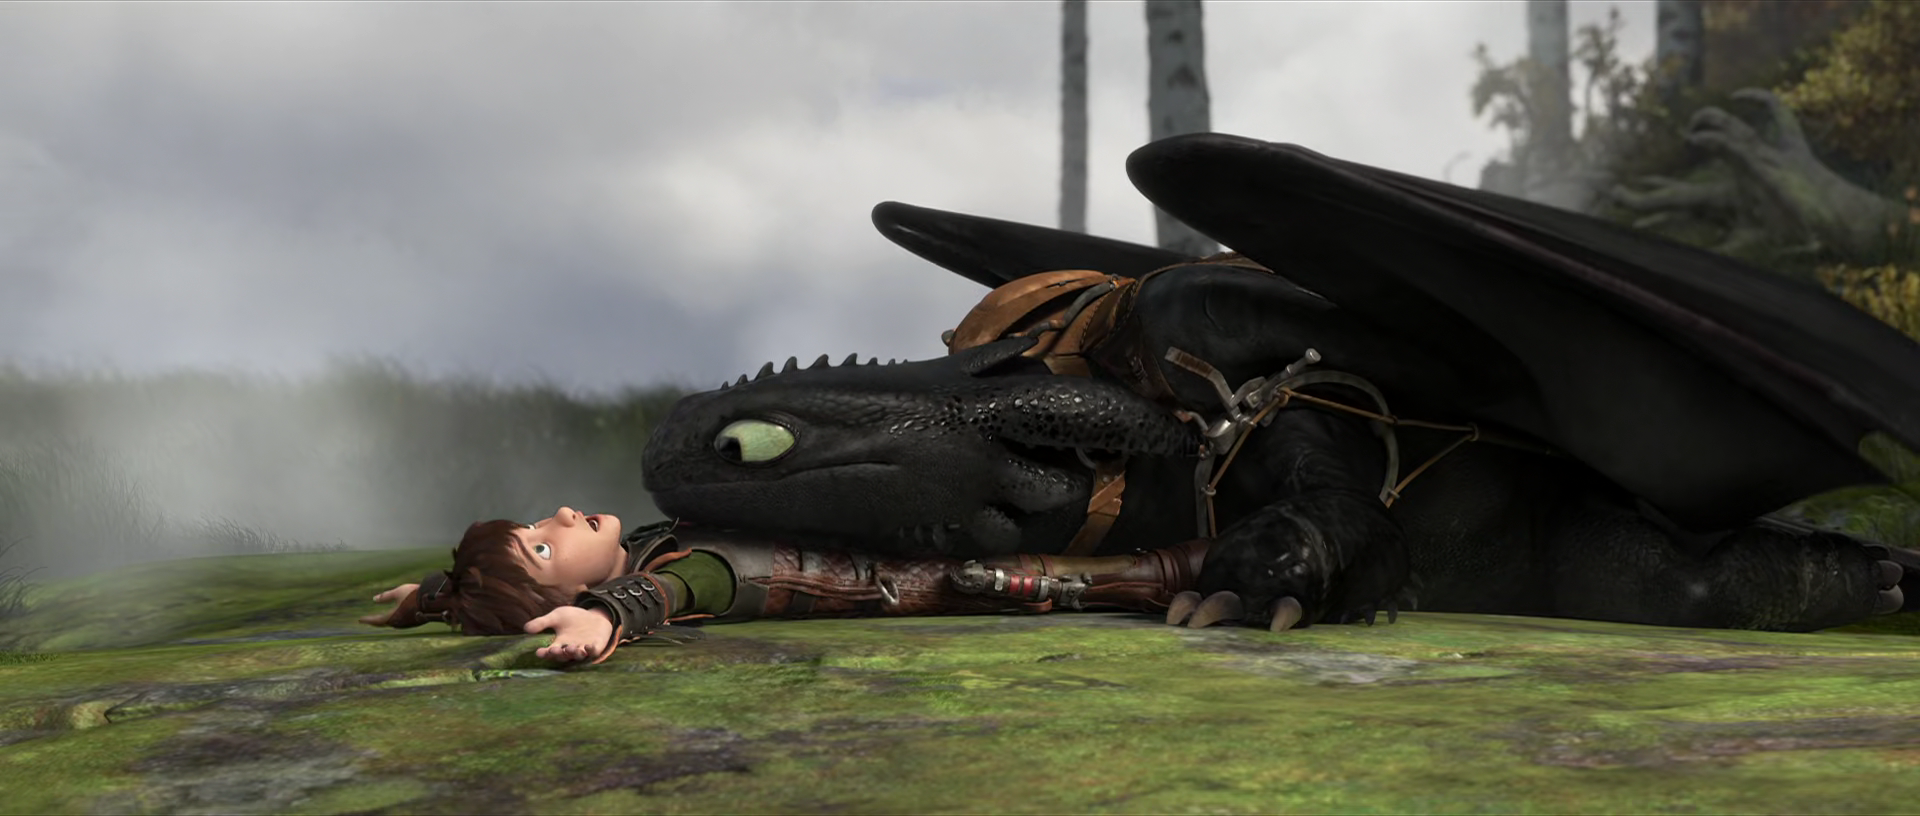 Hiccup and Toothless' Relationship